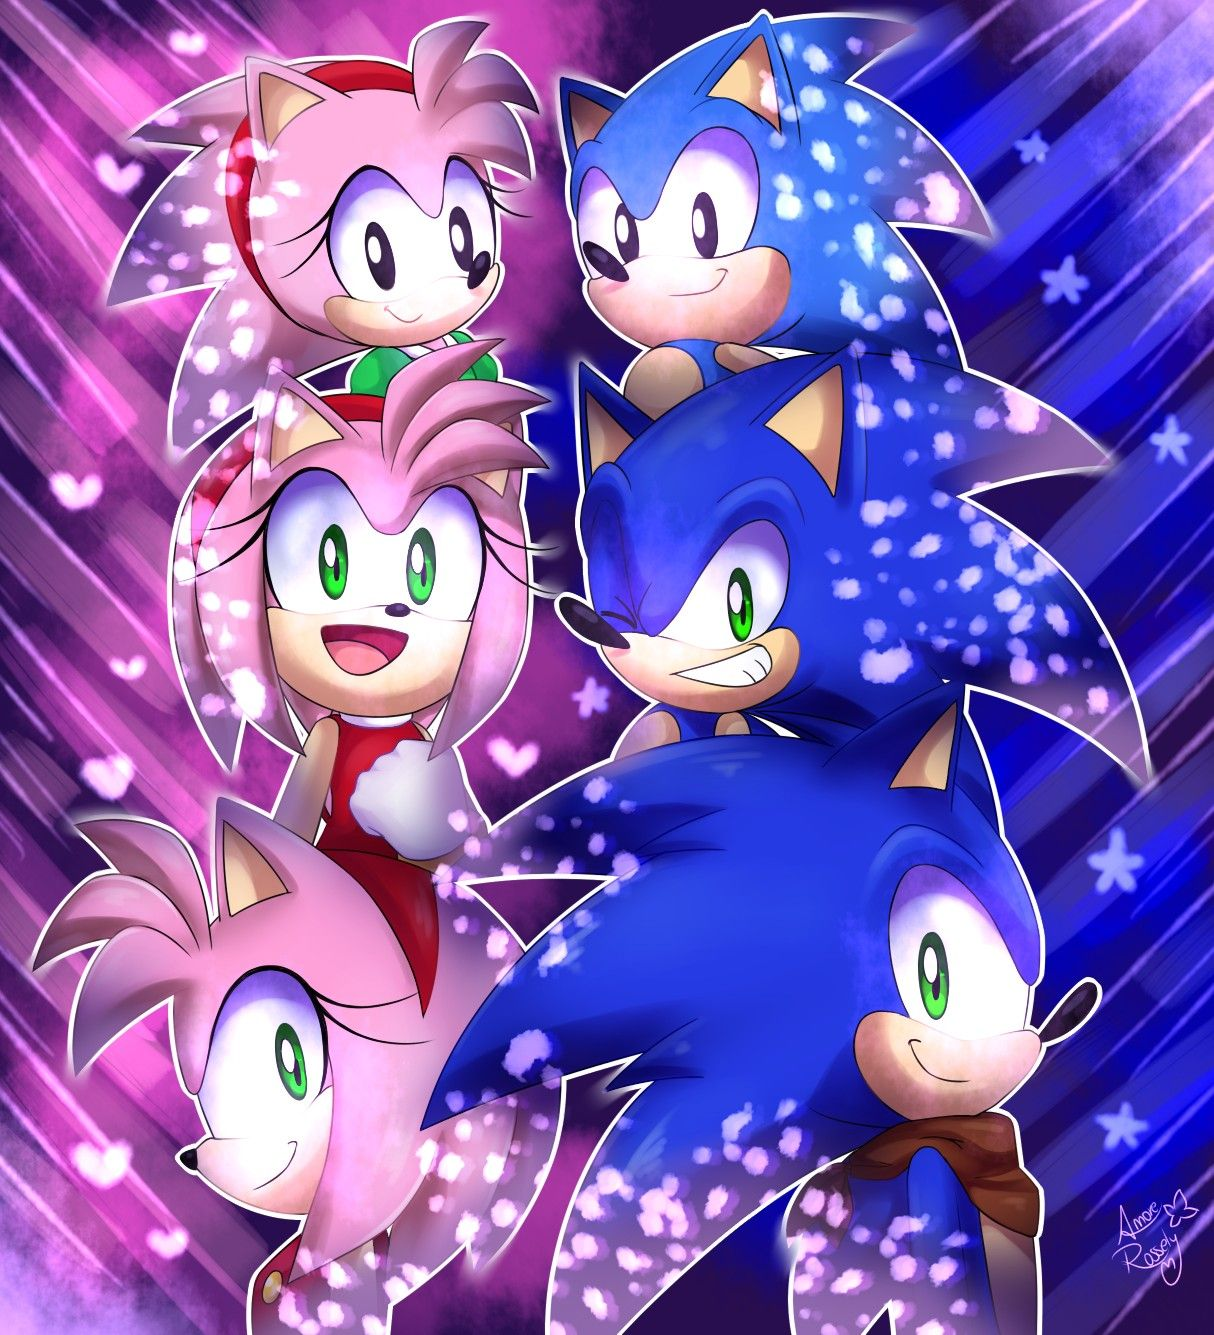 Somewhere In the doujin world | Sonic the Hedgehog